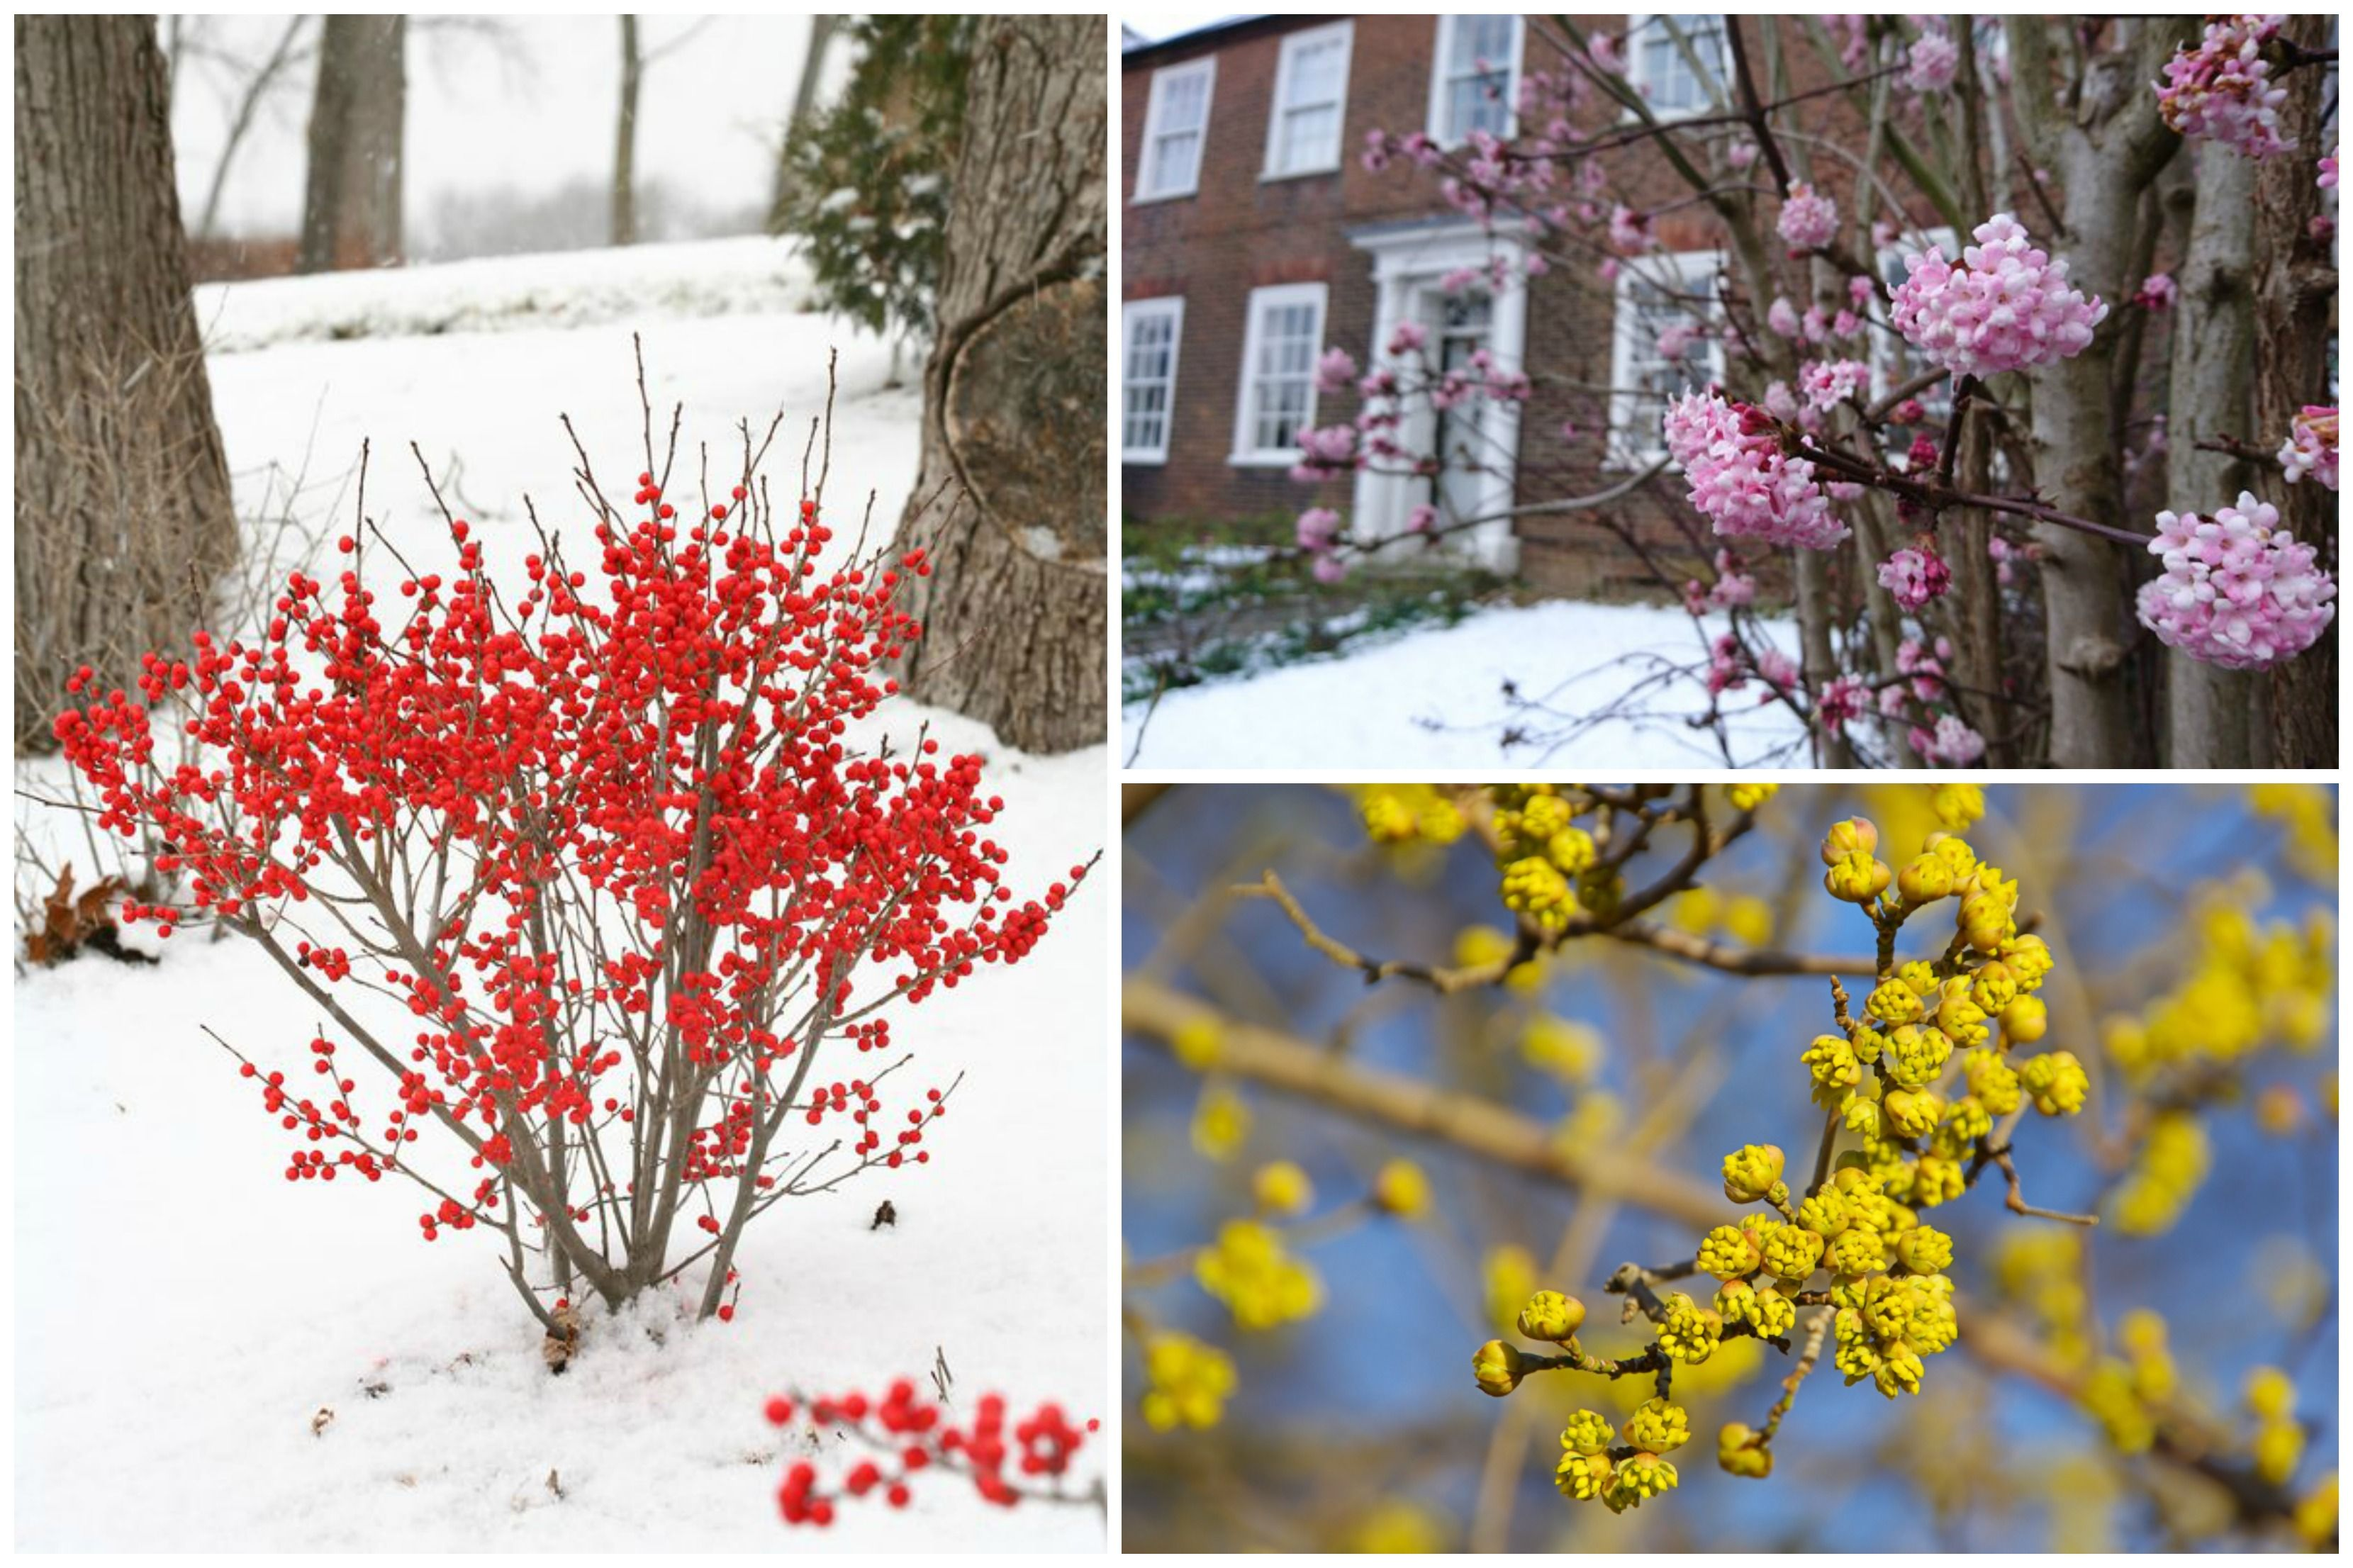 11 Winter Plants That Will Survive The Cold Weather Winter Plants Cold Weather Plants Outdoor Winter Plants